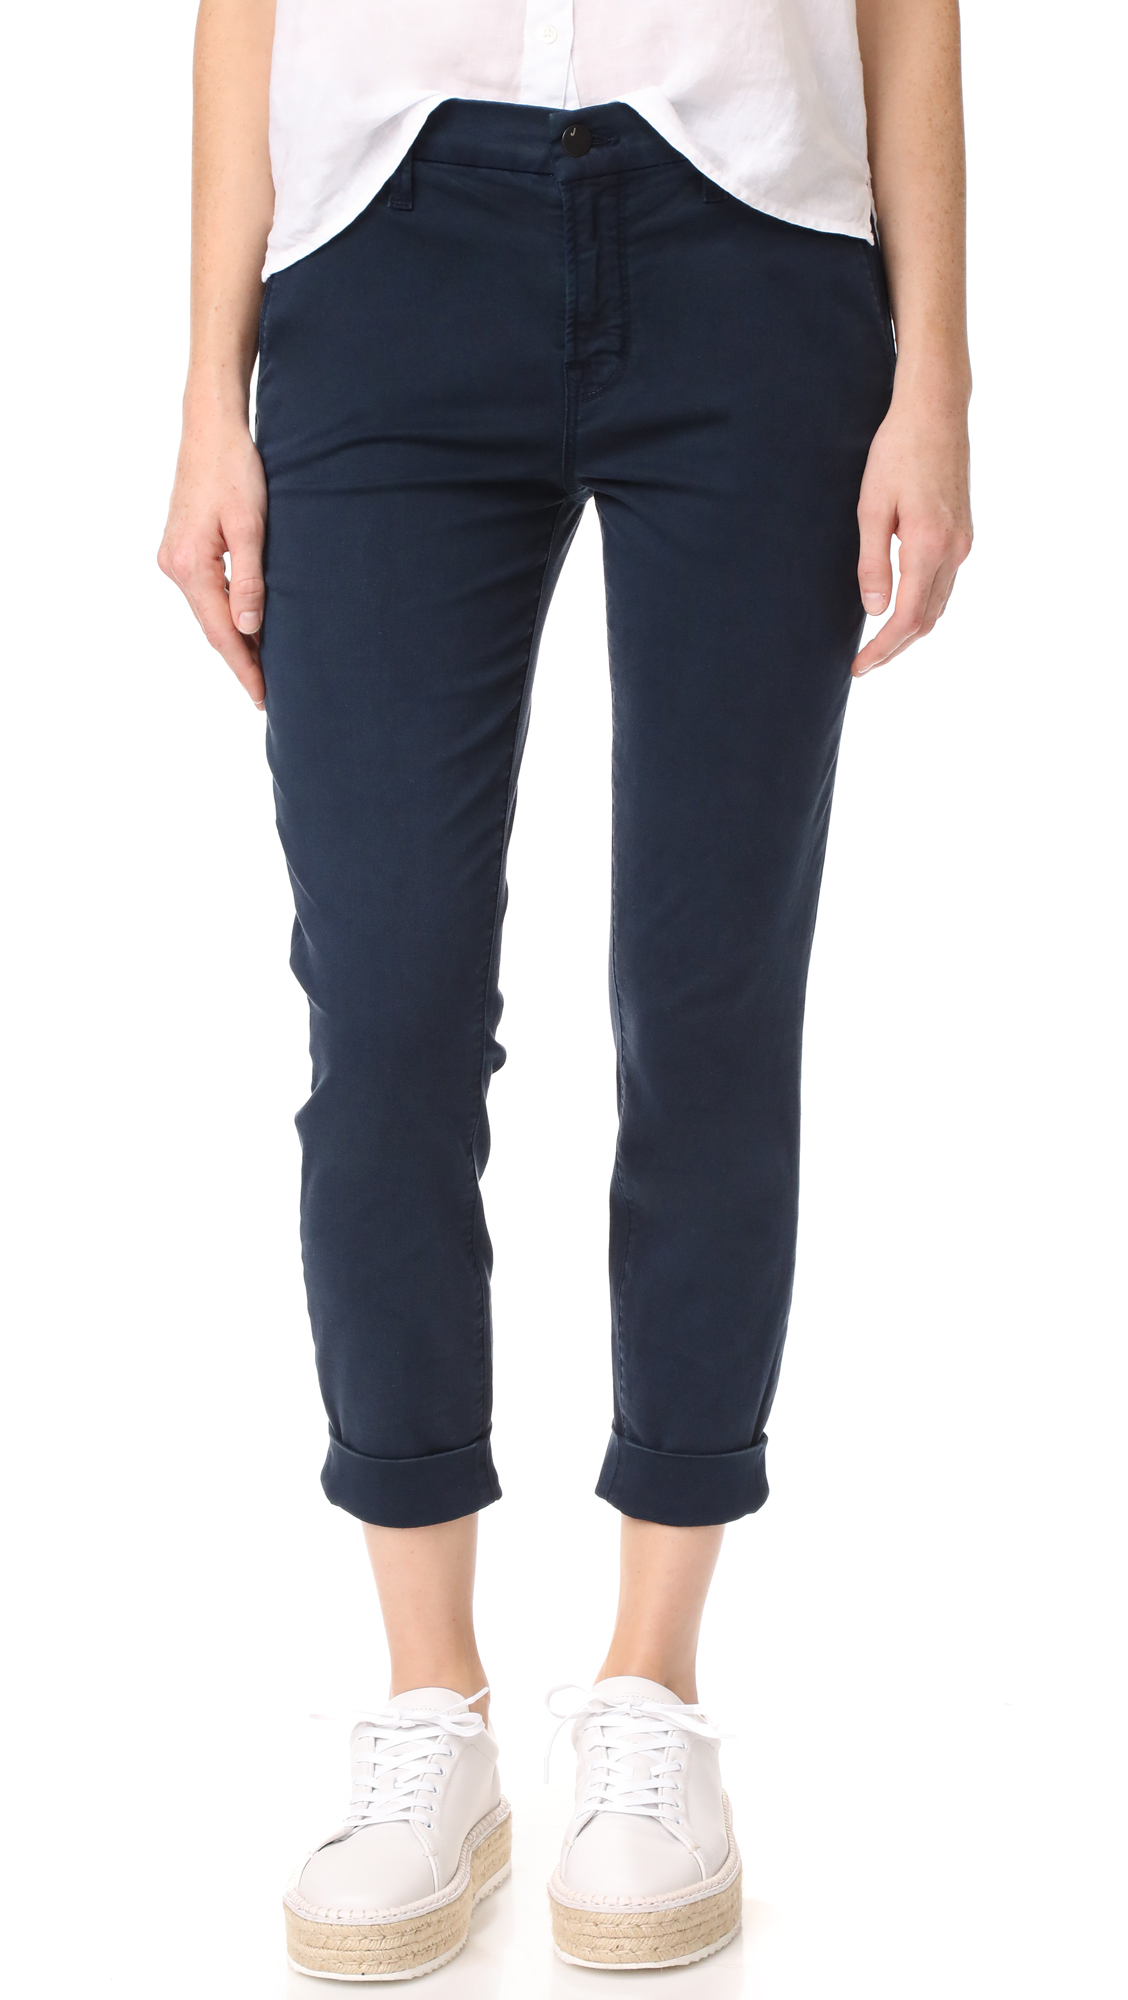 J BRAND JOSIE TAPERED LEG TROUSERS